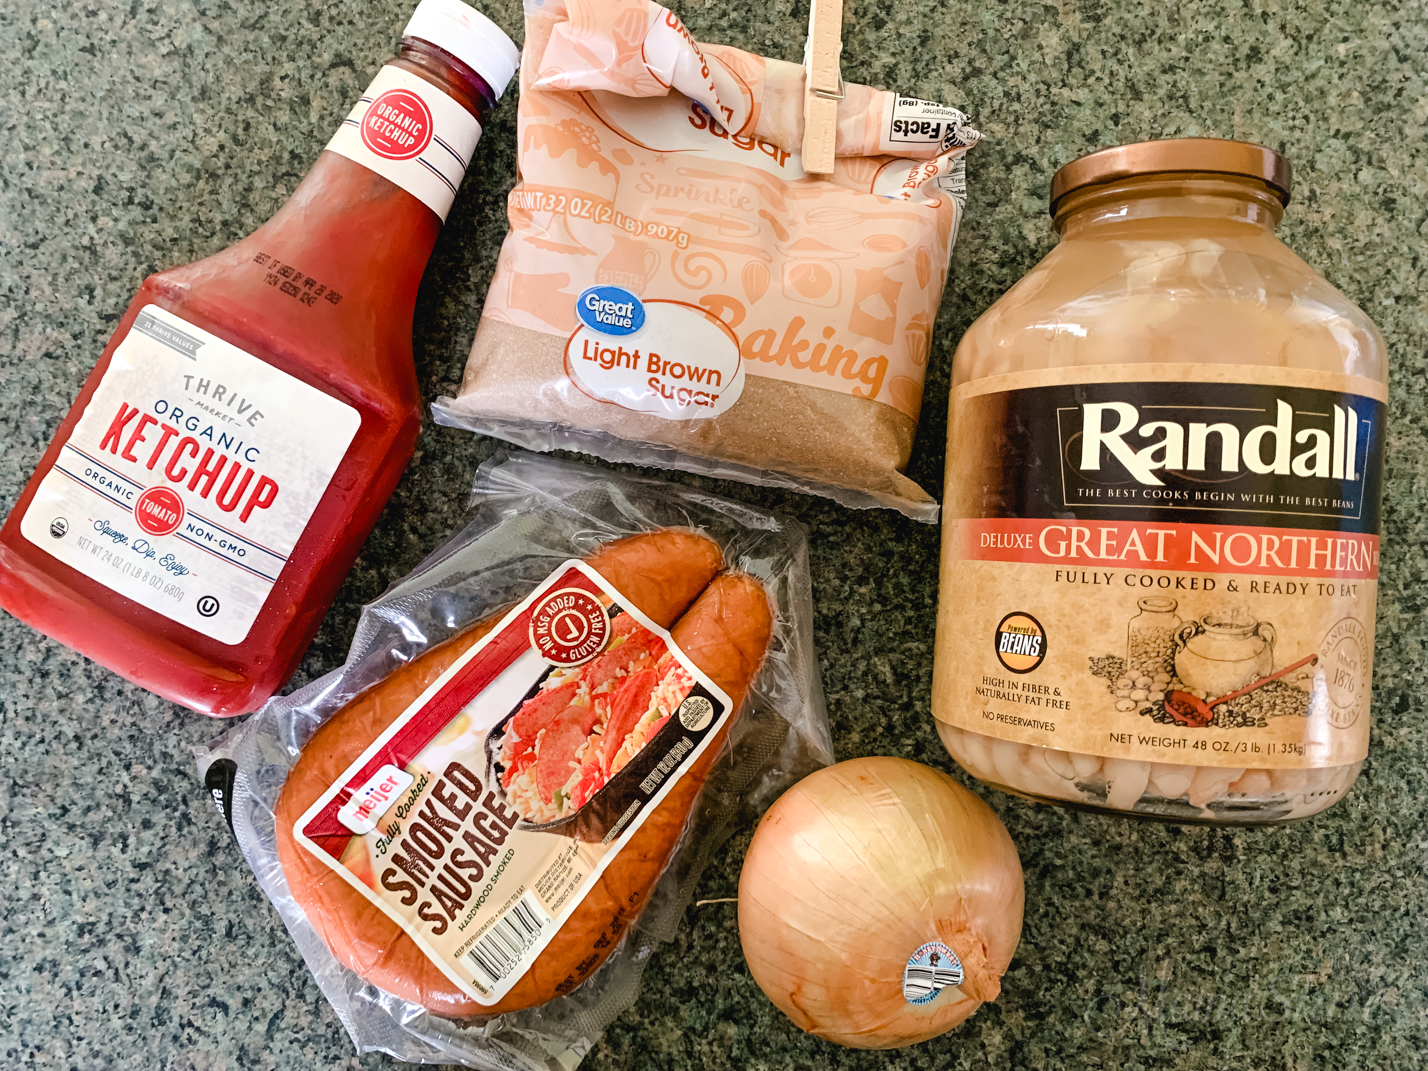 Ingredients for baked beans - brown sugar, great northern beans, onion, smoked sausage, and ketchup.